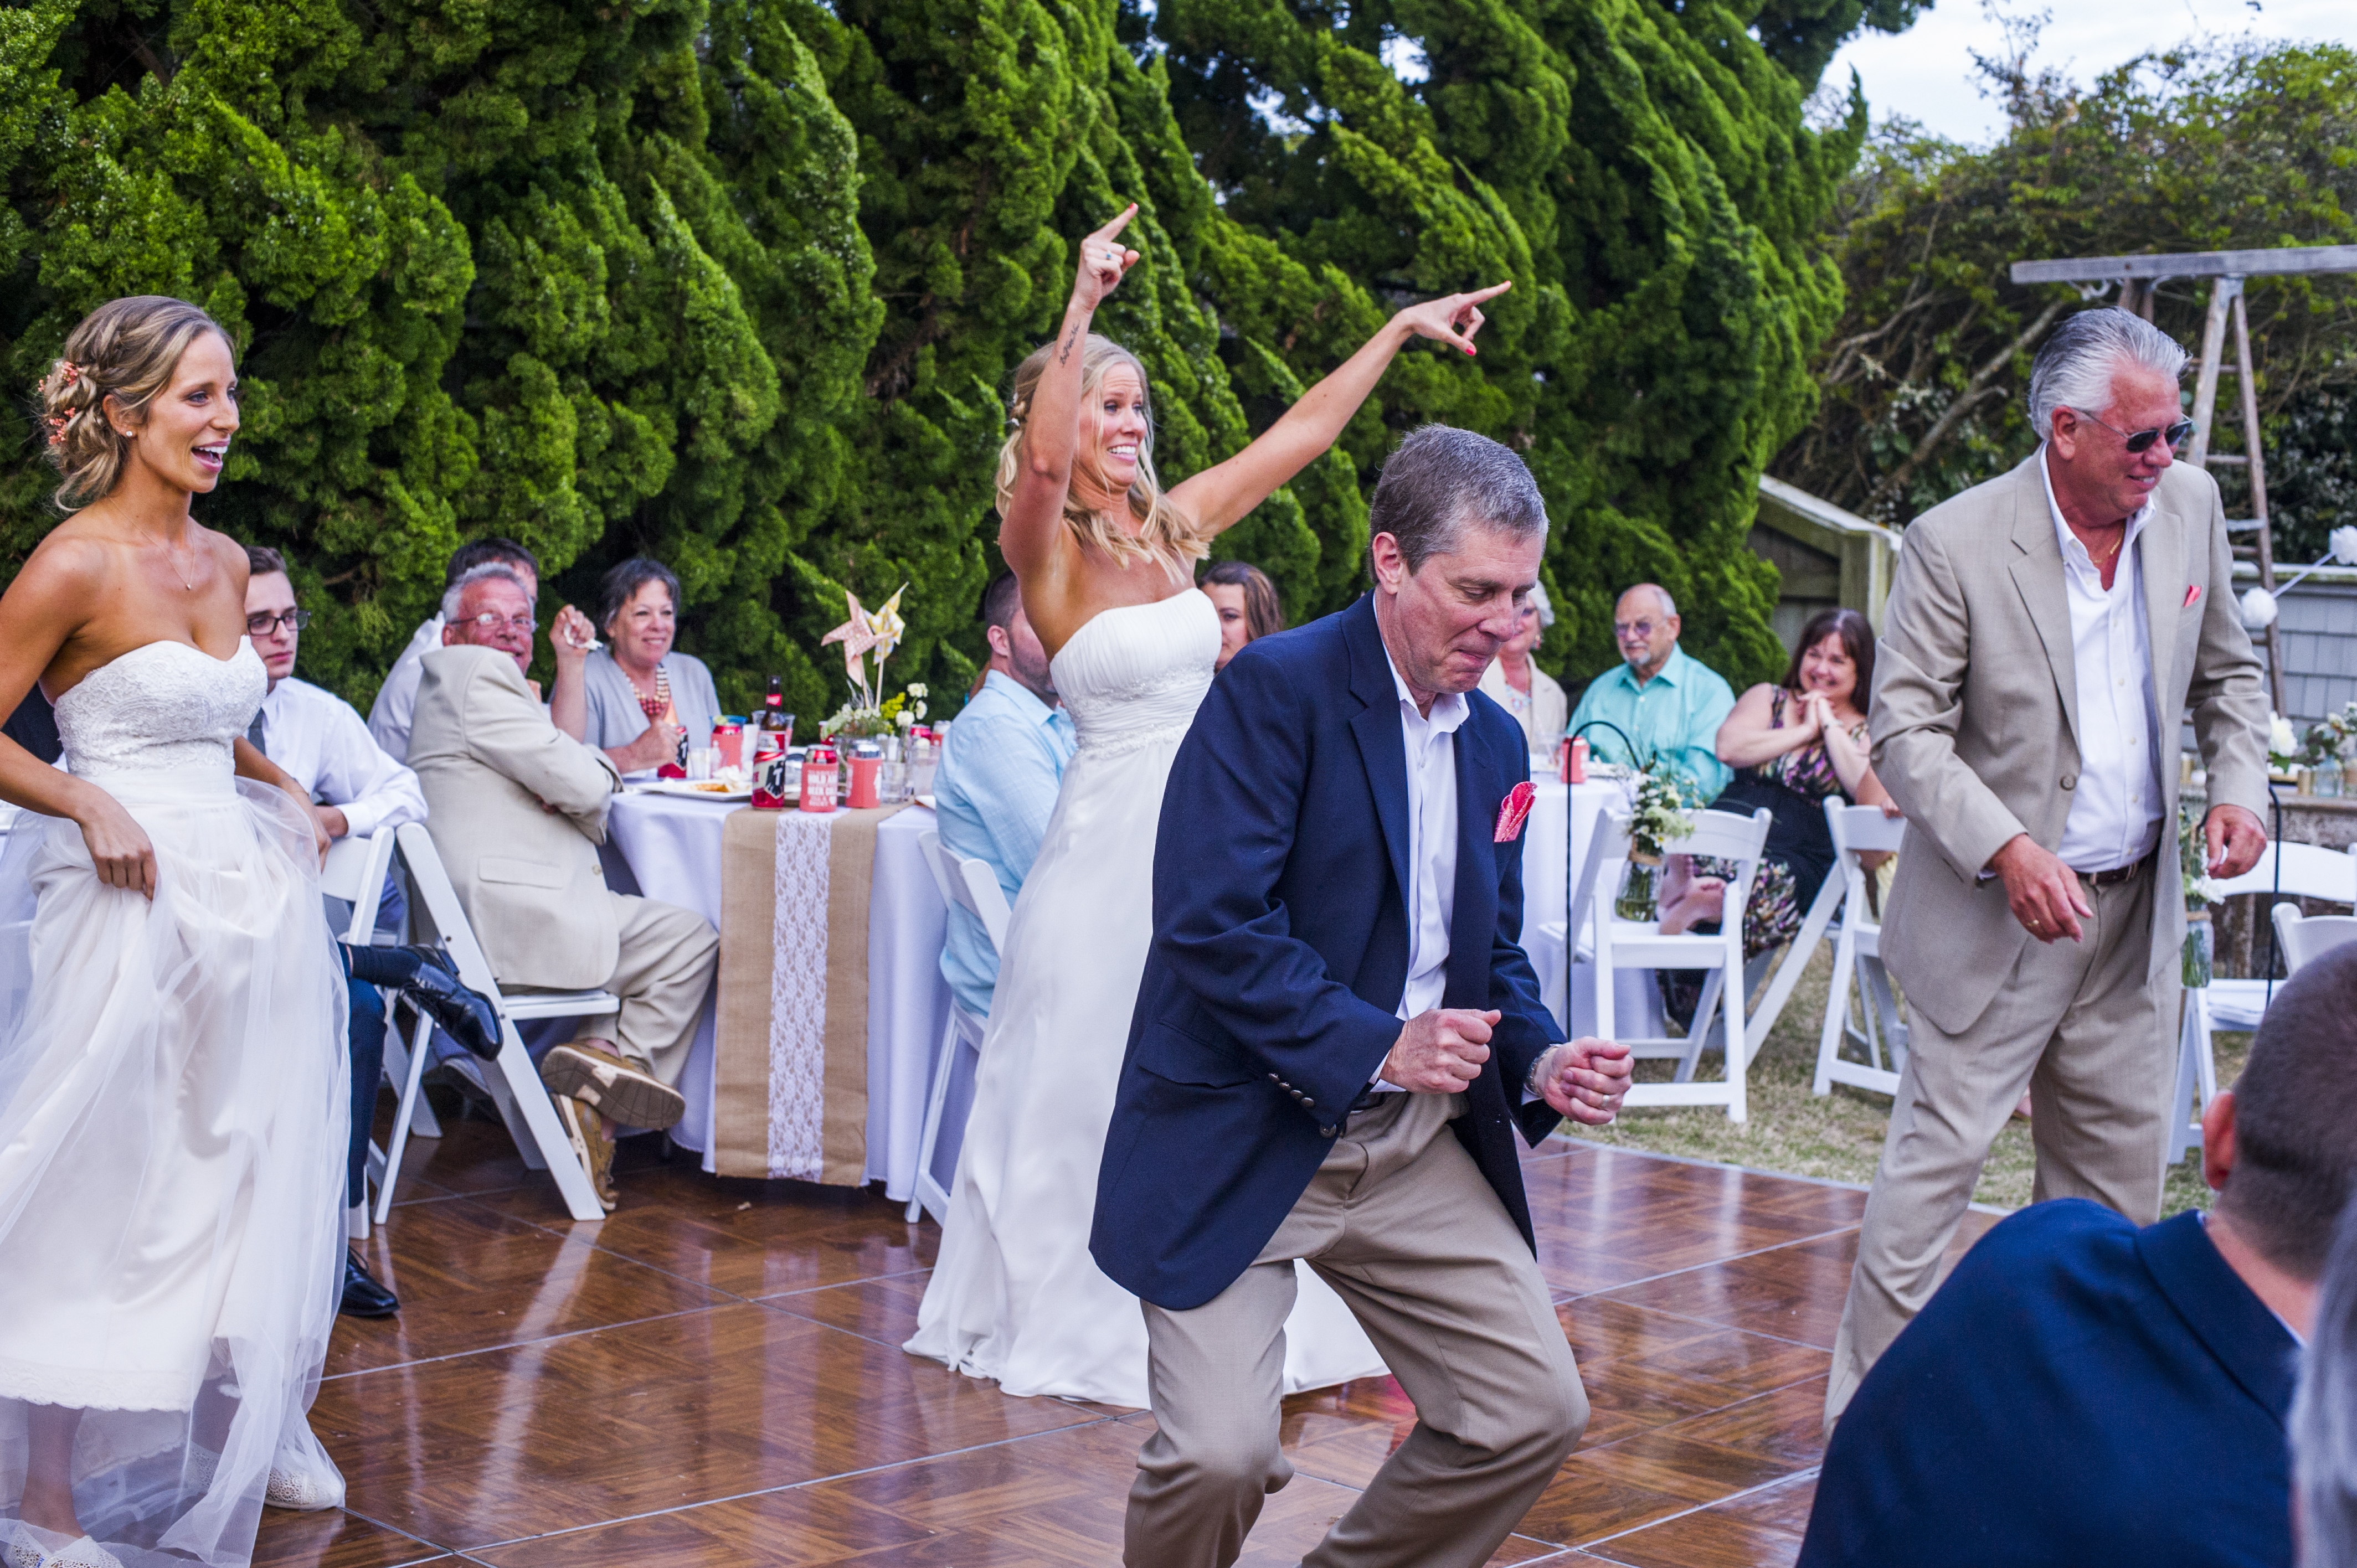 He willingly participated in a choreographed father/daughter dance at my wedding.